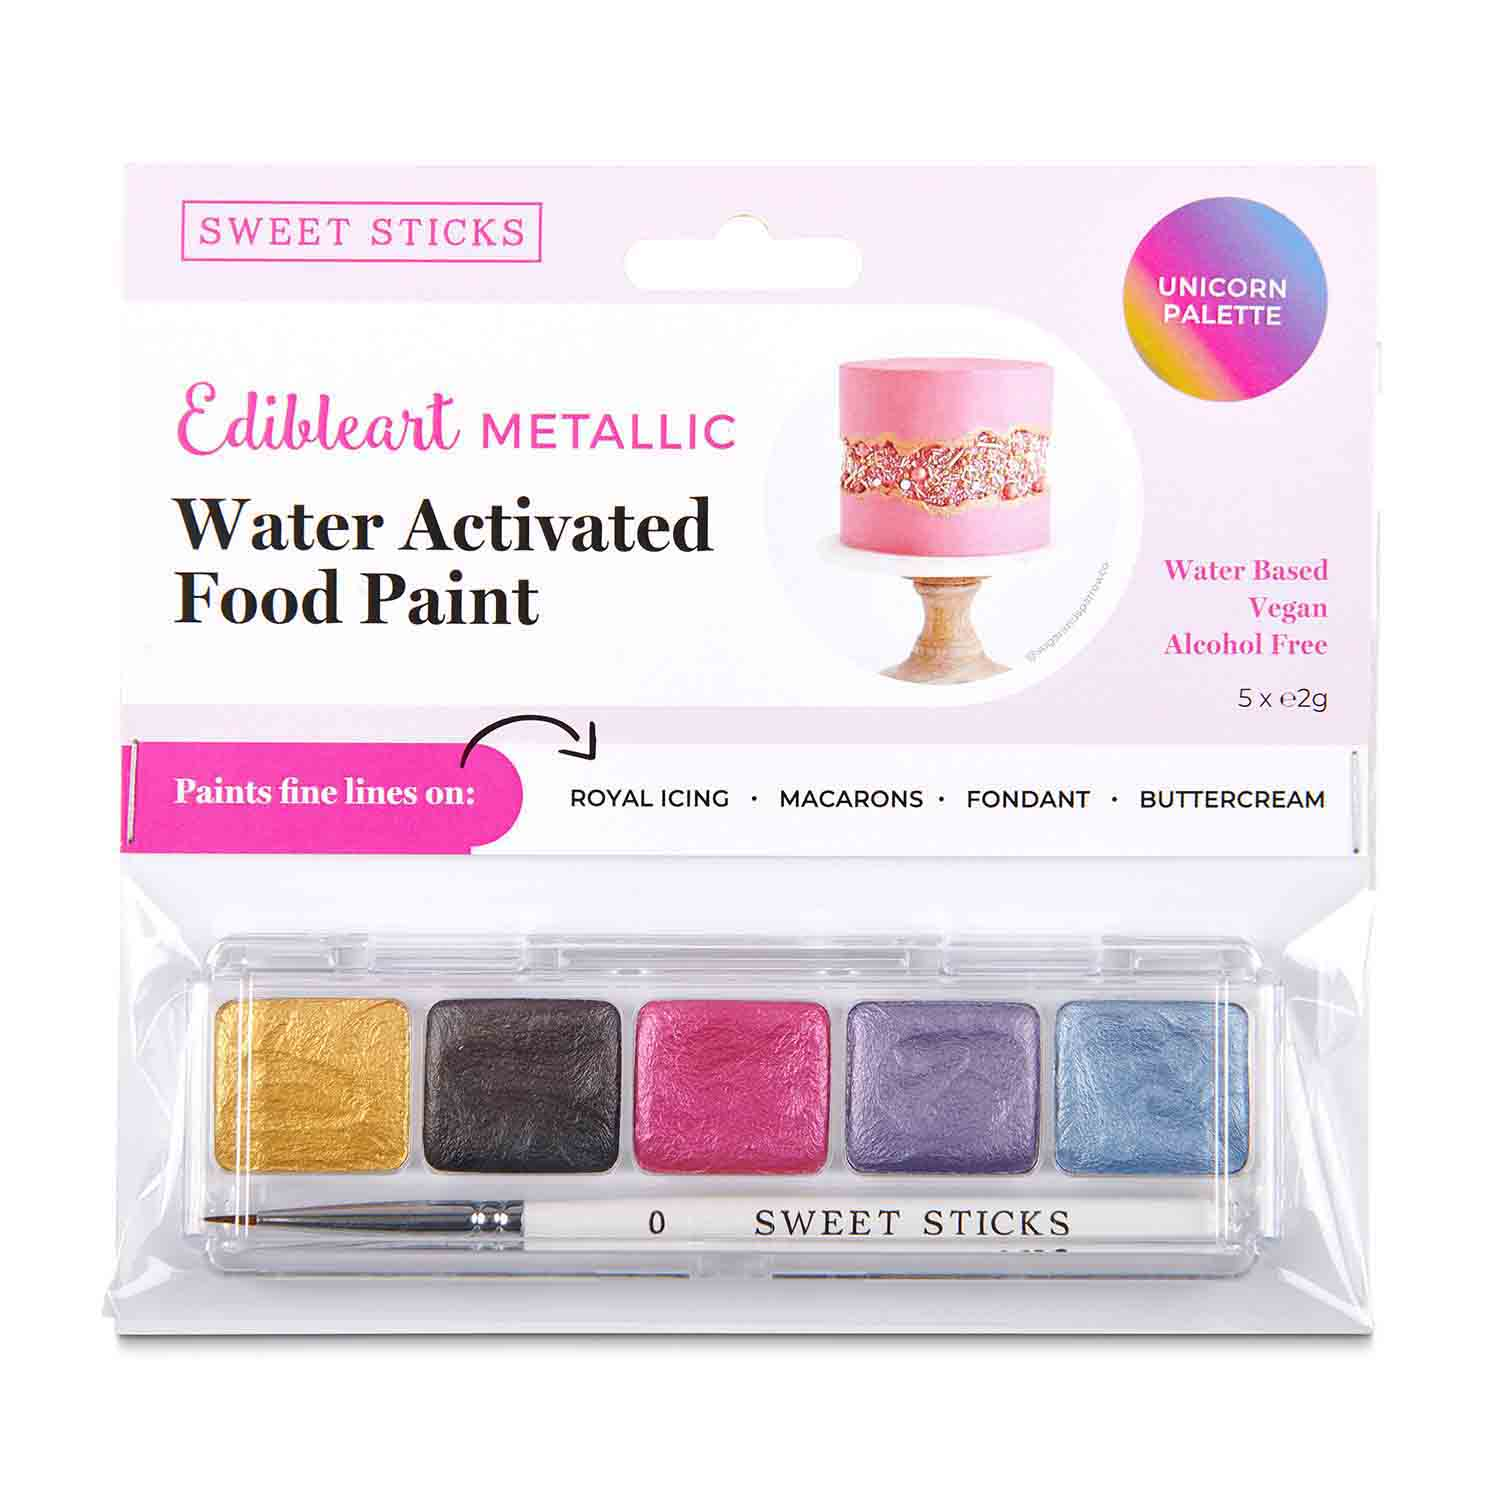 Unicorn Palette Metallic Water Activated Food Paint